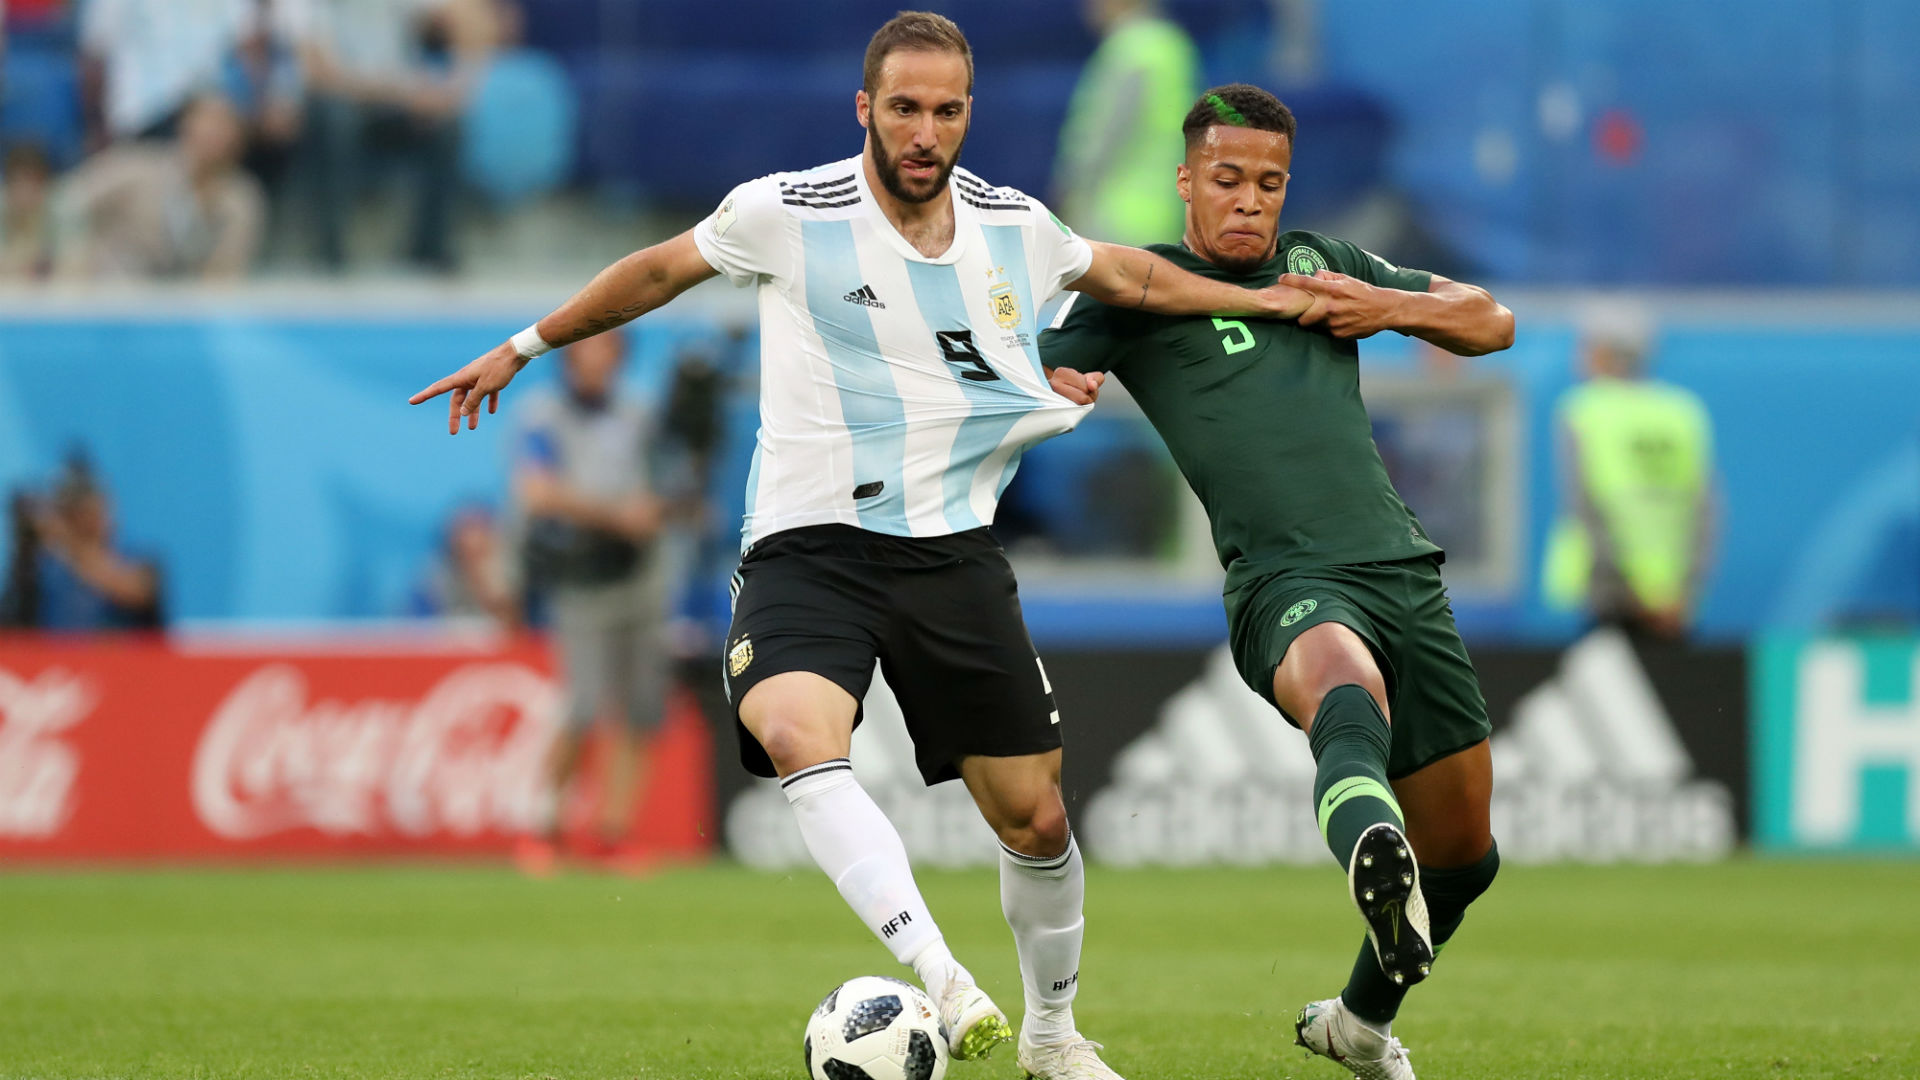 Higuain announces retirement from 'toxic' international duty with Argentina